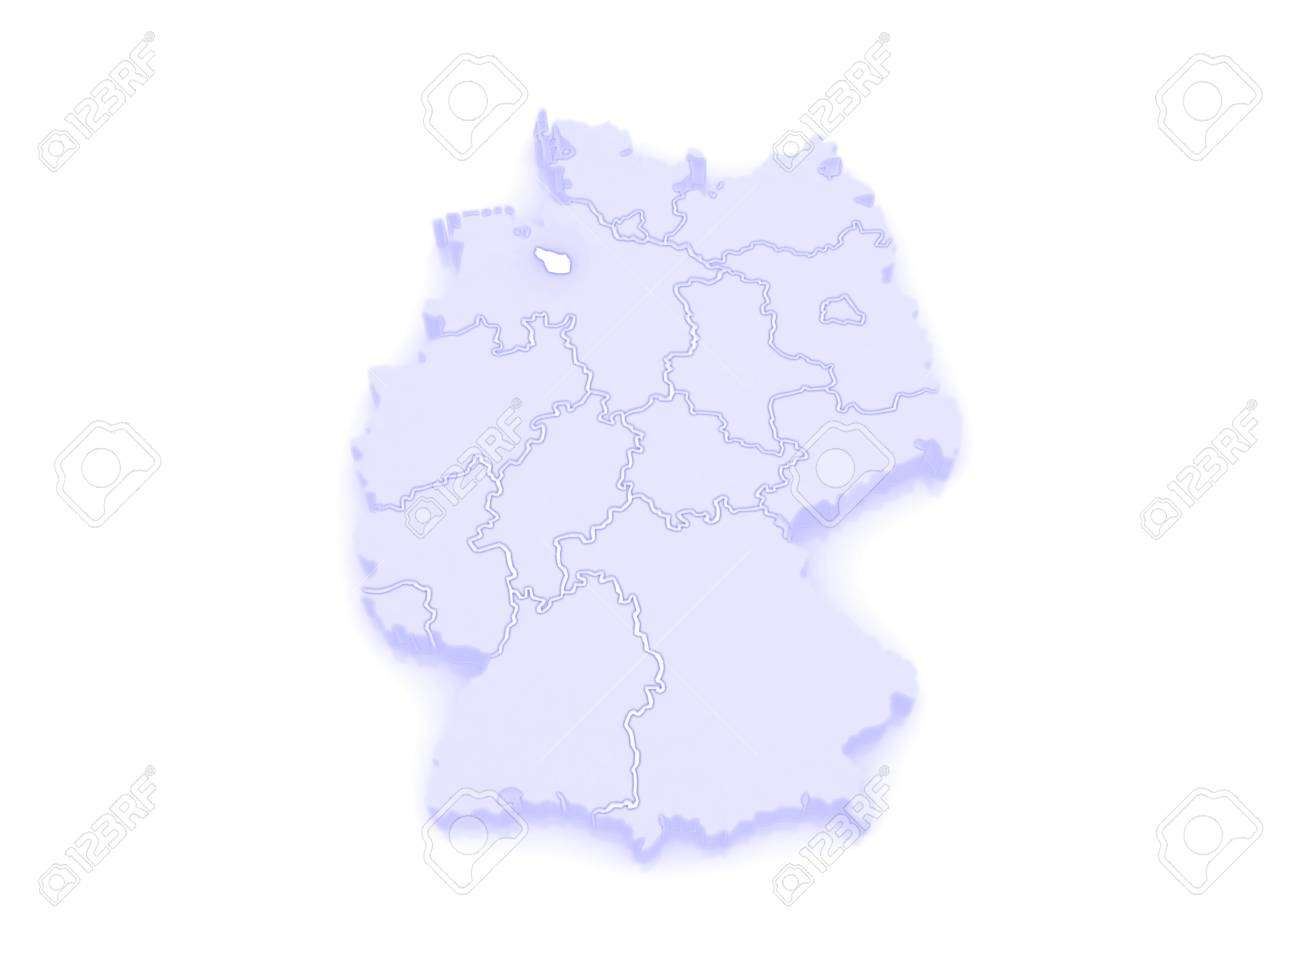 Map Of Bremen. Germany. 3d Stock Photo, Picture And Royalty Free ...